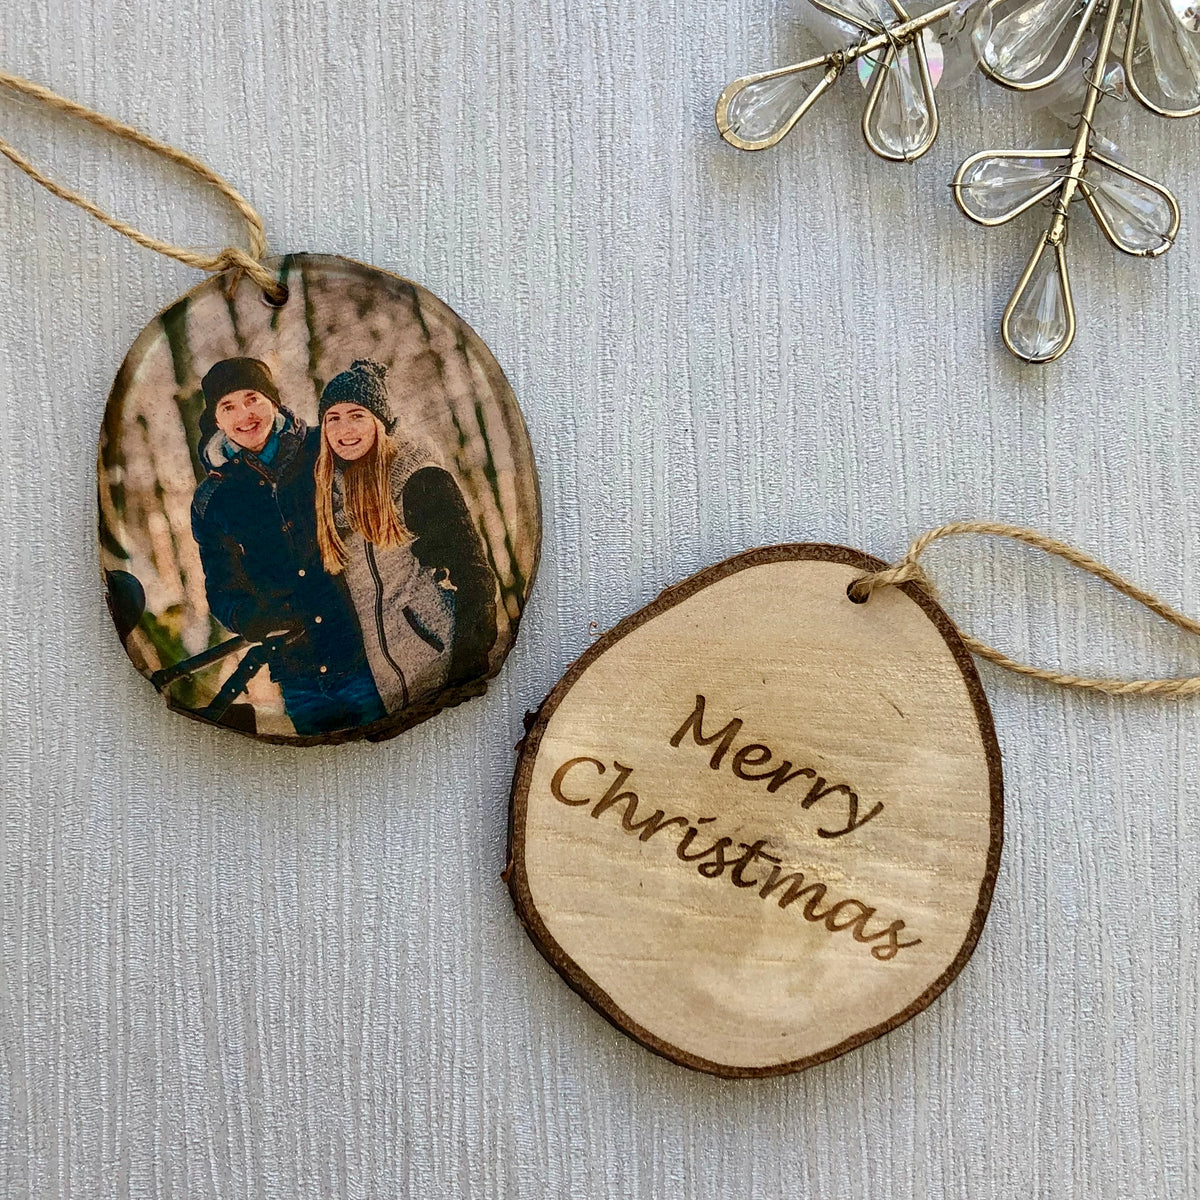 Two wood slice christmas tree decorations, one has a photo of a couple, the other has the words Merry Christmas engraved.